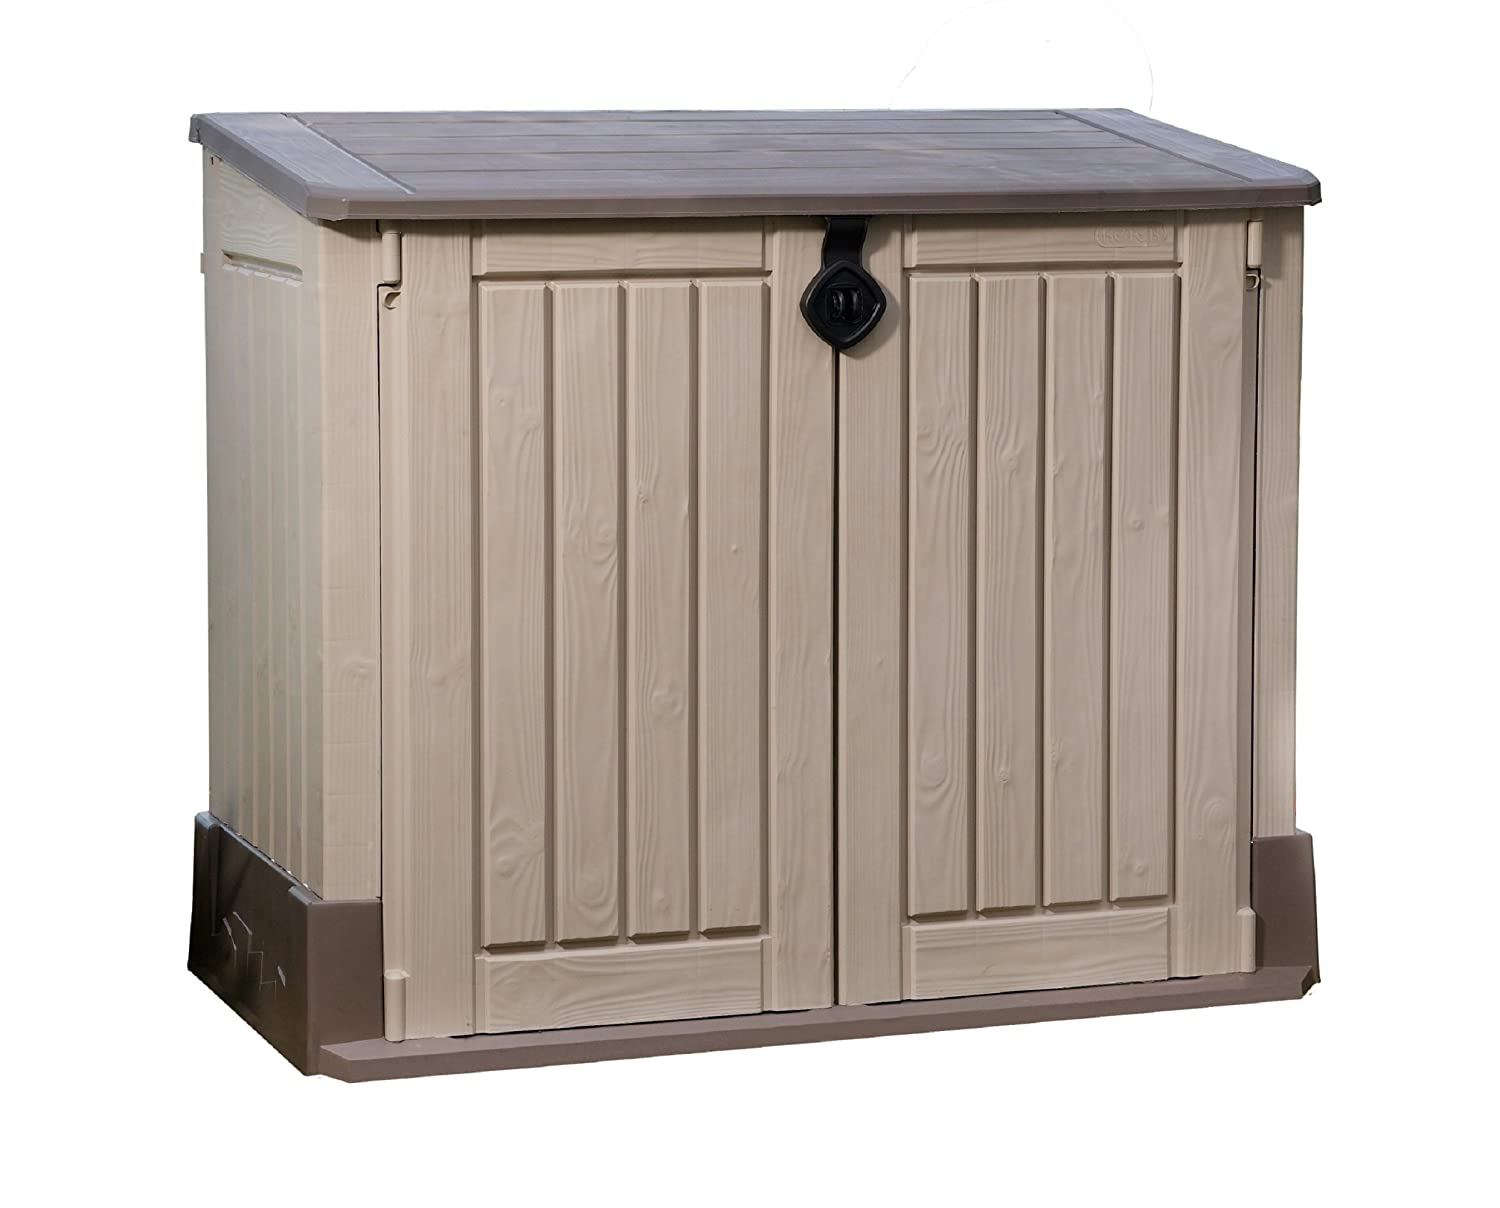 Amazon com   Keter Store It Out MIDI Outdoor Resin Horizontal Storage Shed    Portable Storage Shed   Patio  Lawn   Garden. Amazon com   Keter Store It Out MIDI Outdoor Resin Horizontal